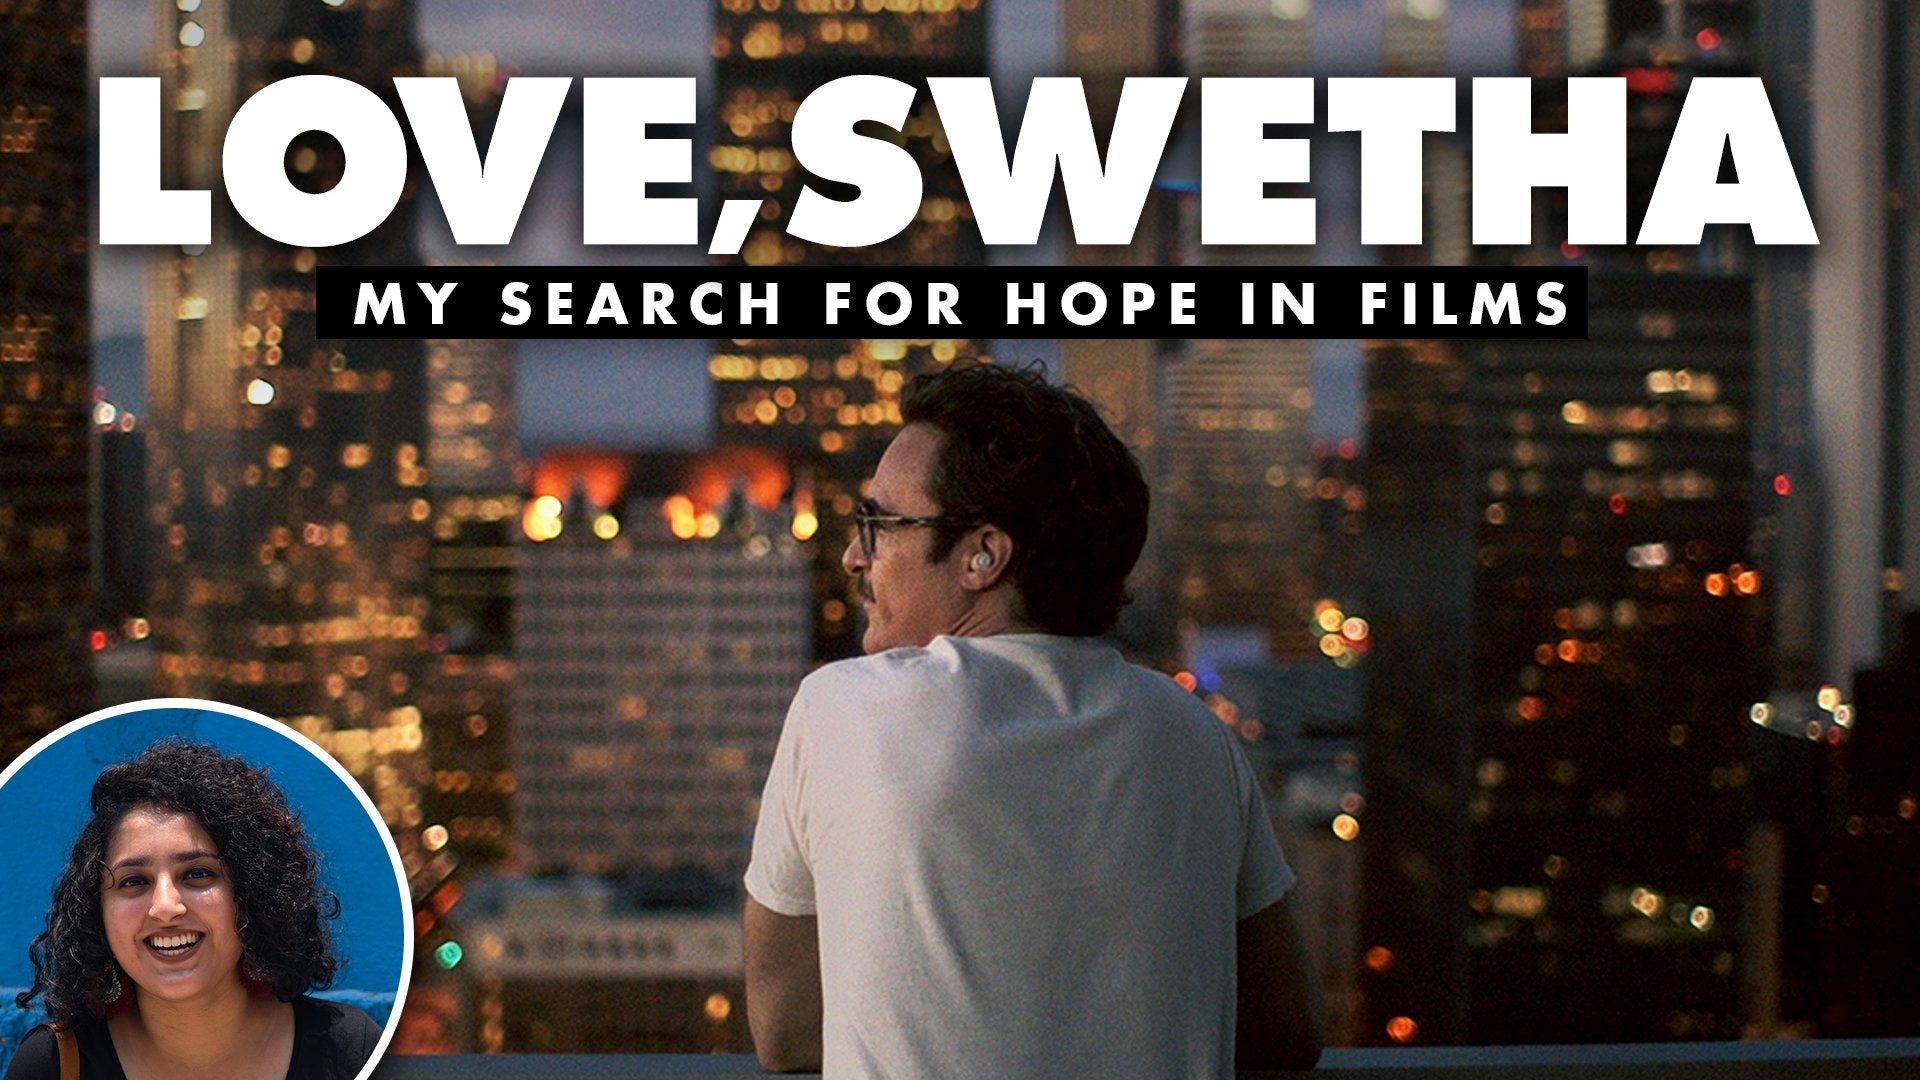 My Search for Hope in Films